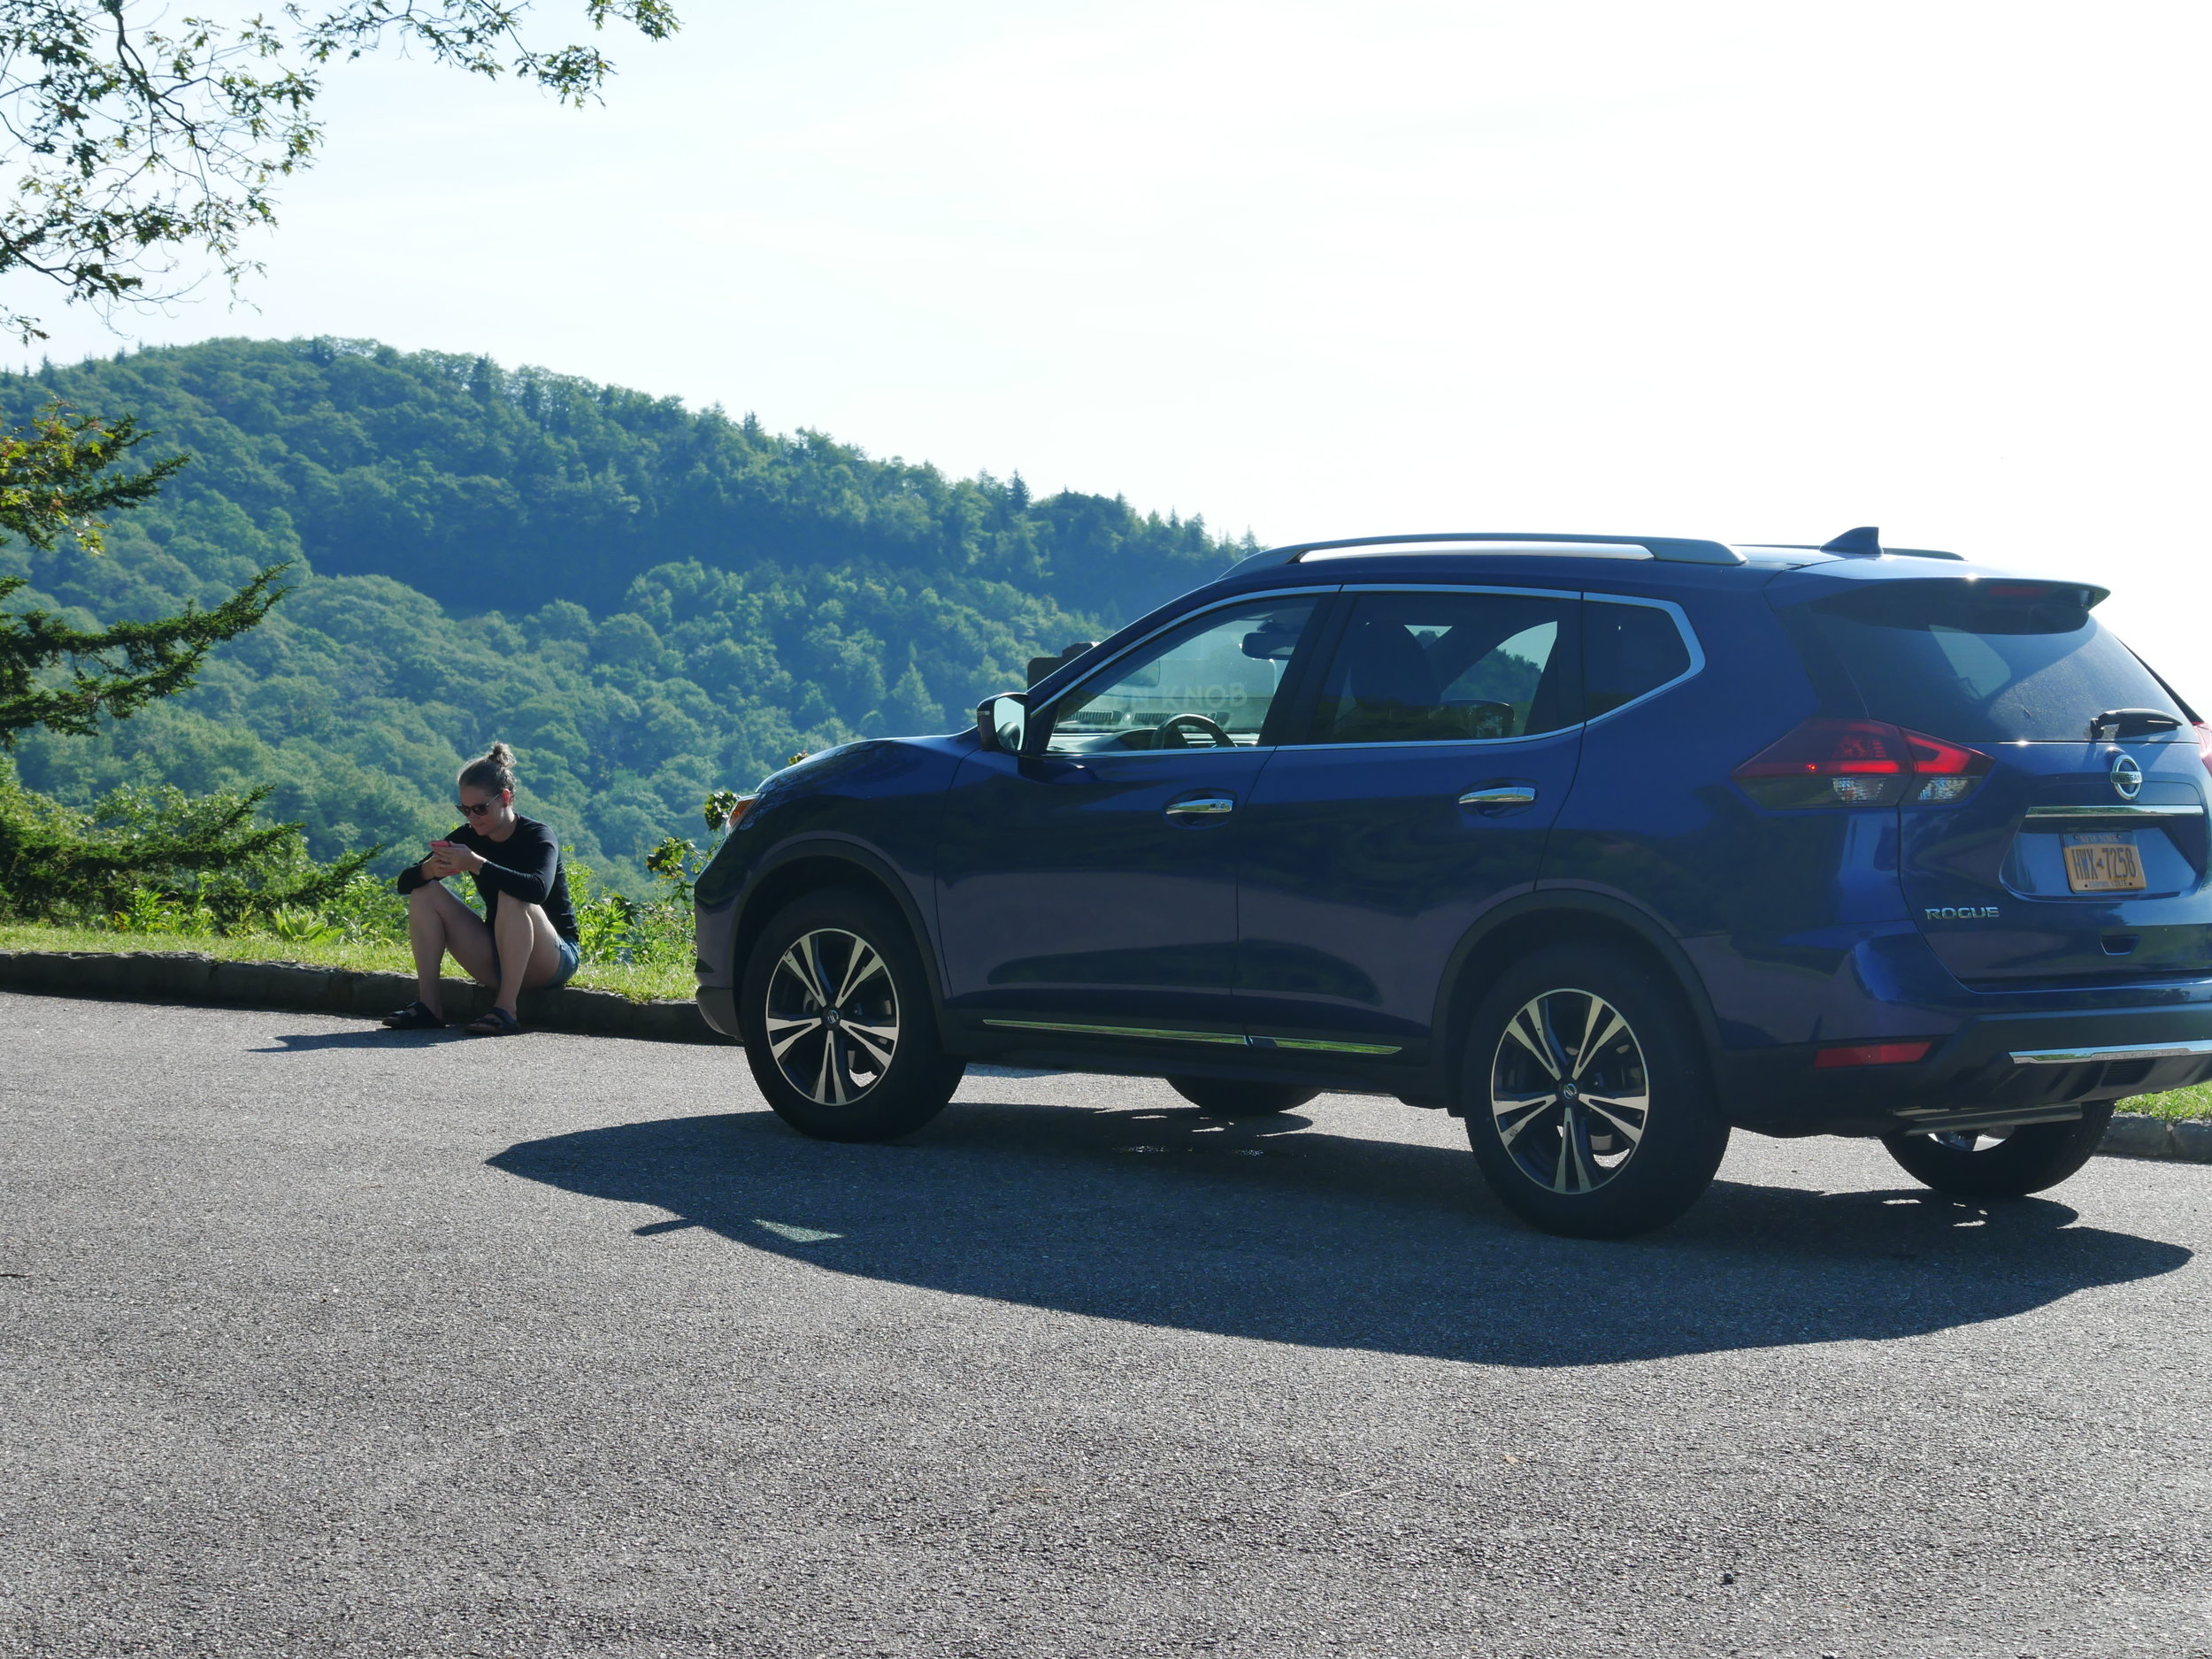 Trusty Rogue in the Blue RIdge Mountains